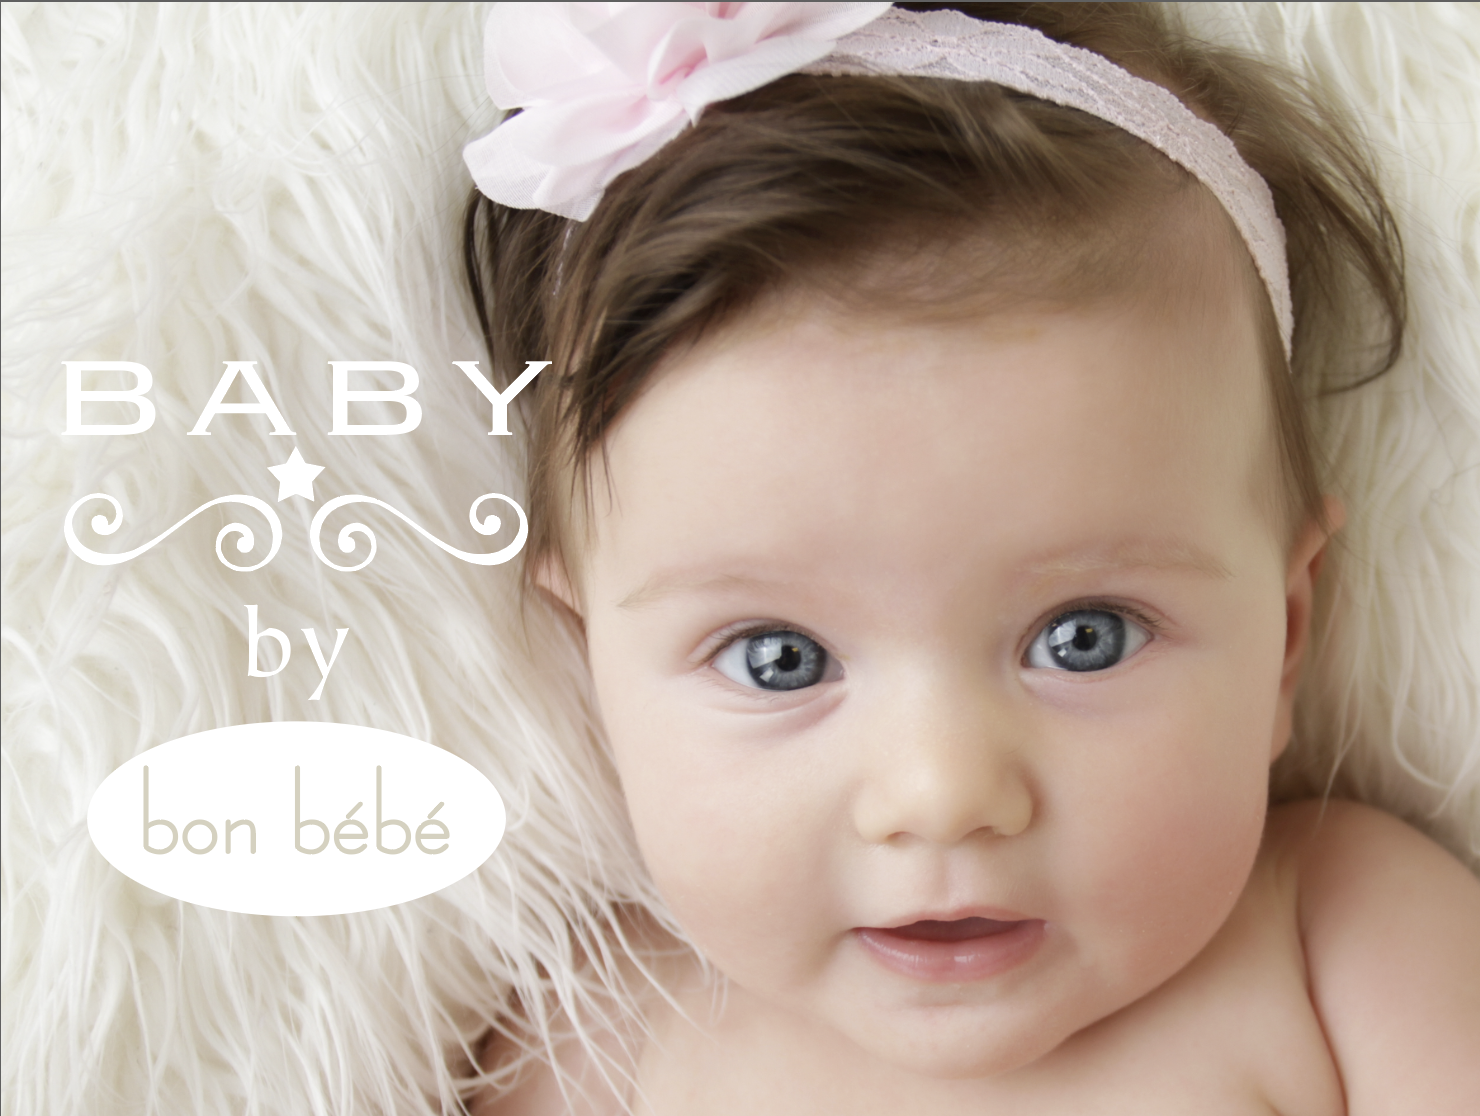 Focusing on the softest fabrics for baby like super soft cottons, terry and velour, BABY by bon bébé, is a line of layette and accessories perfect for gifting and special occasions.